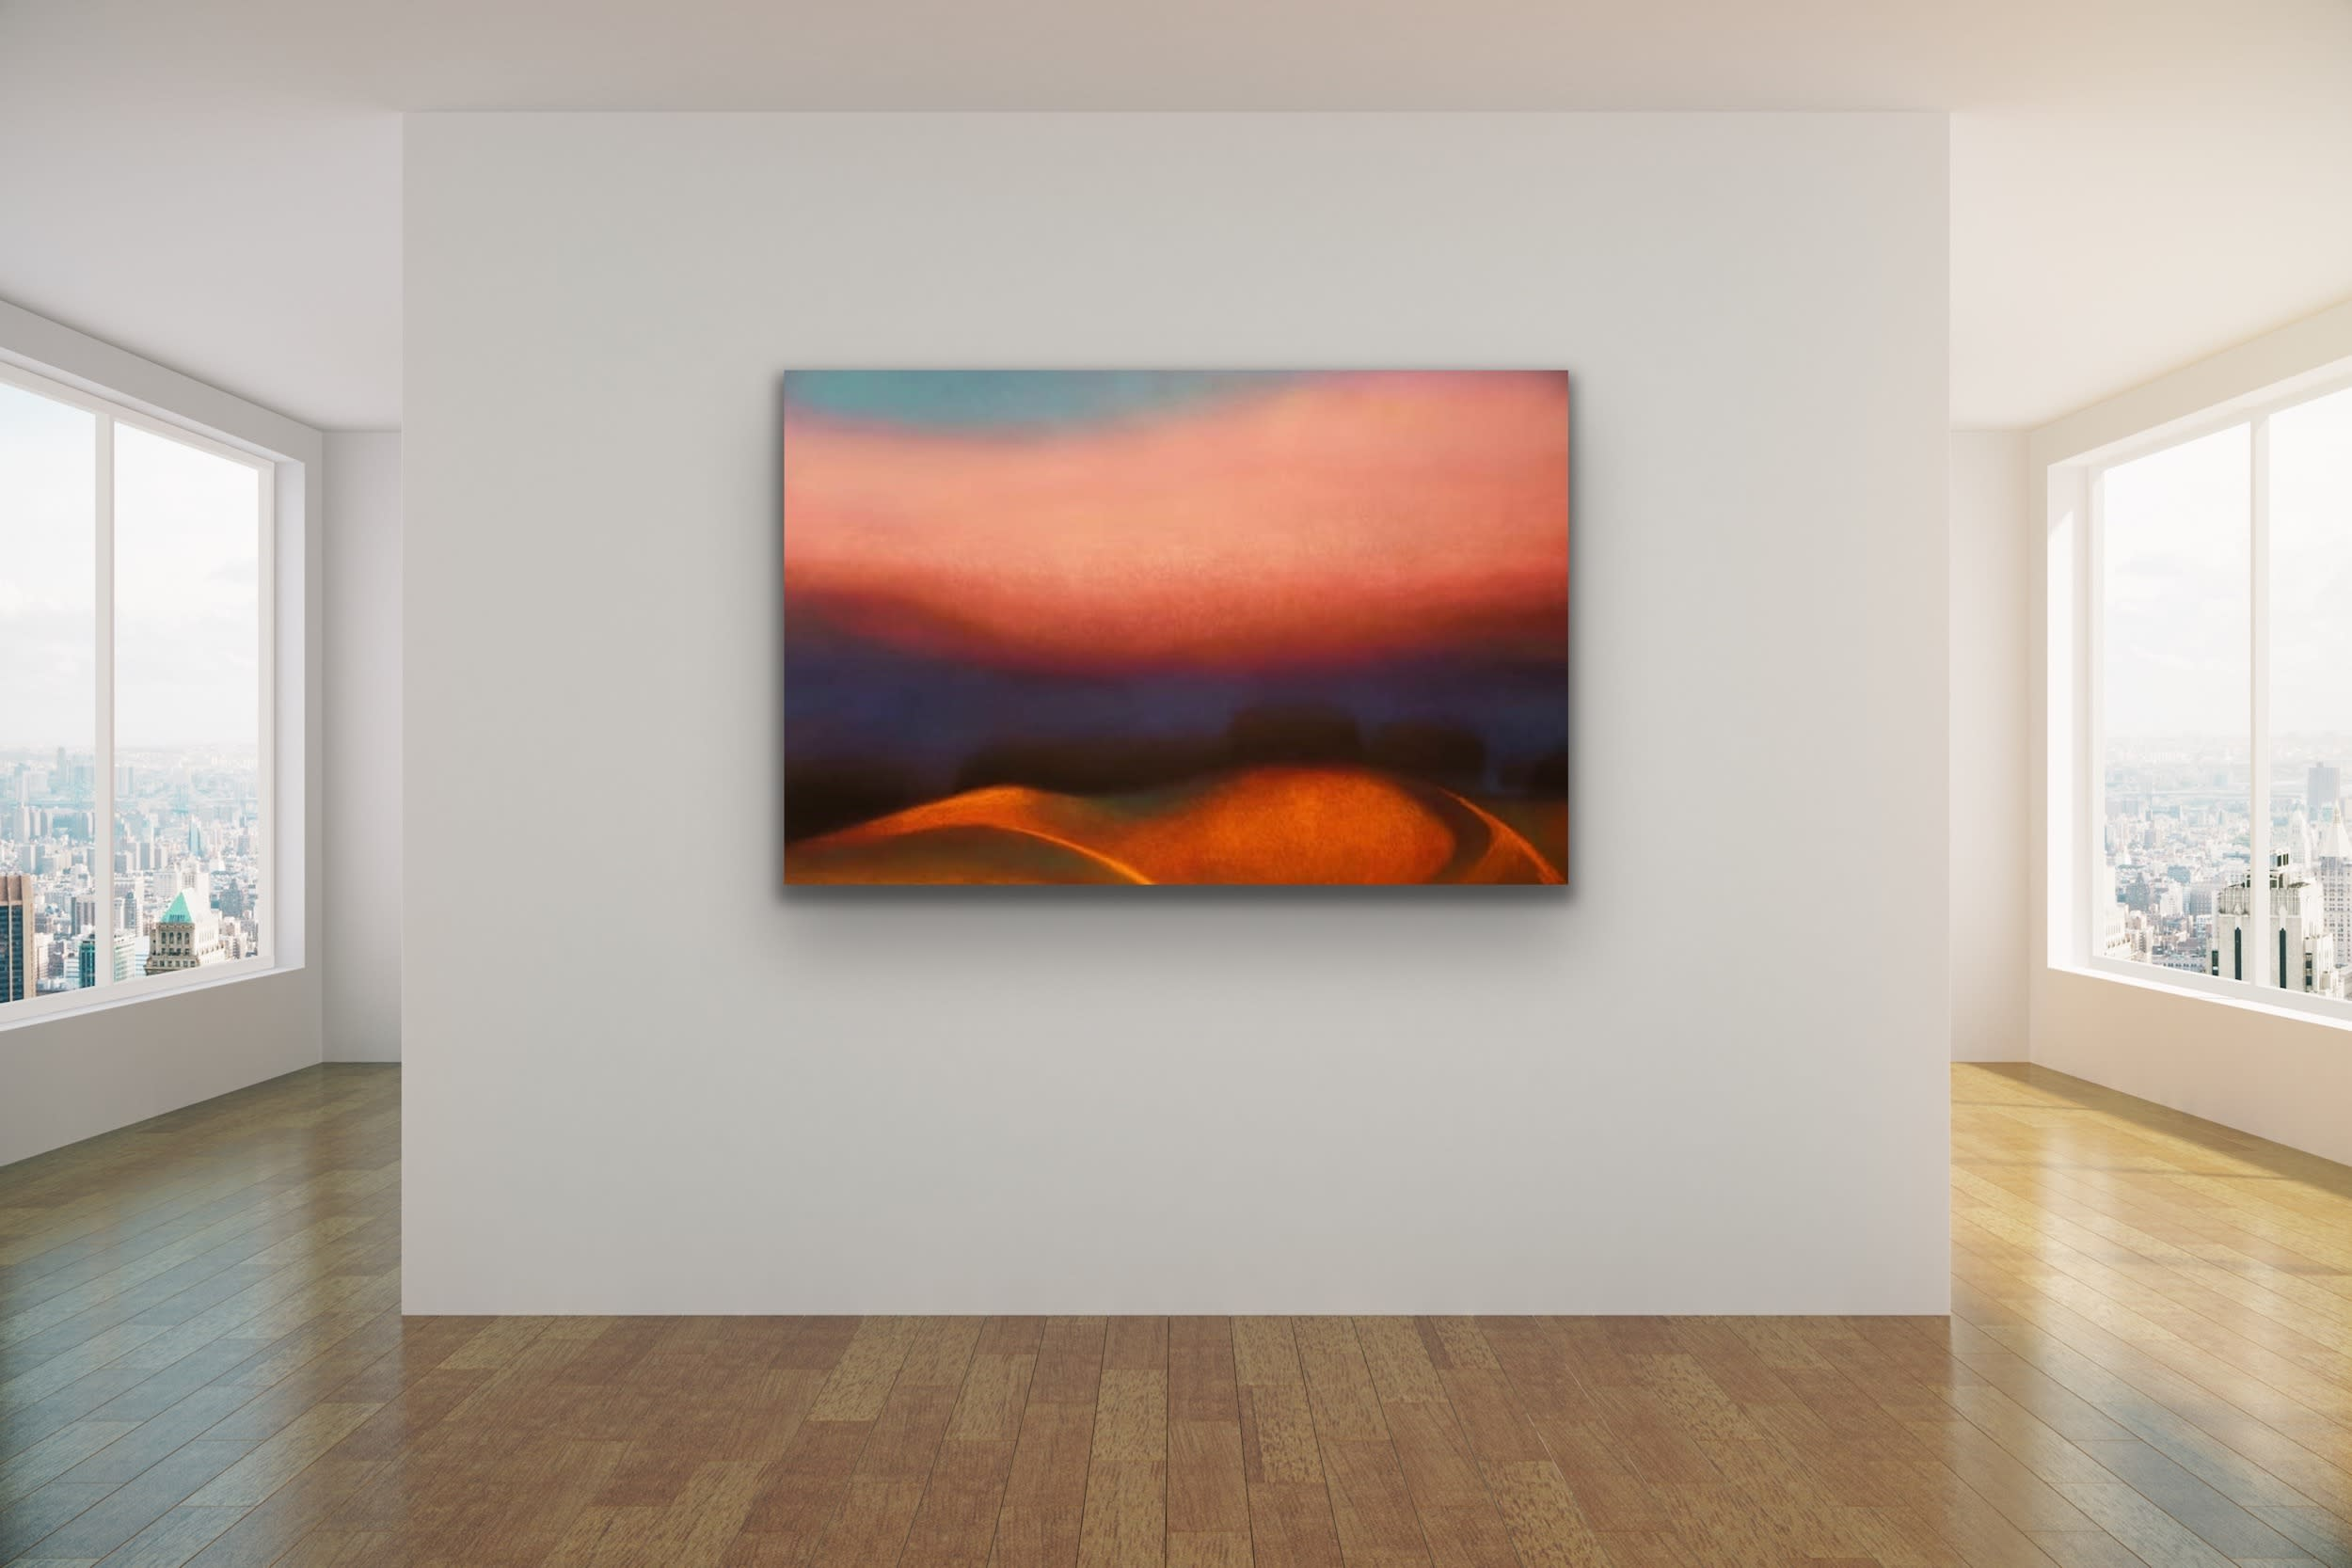 <div class='title'>           Diana Lehr   Landscape Abstract Painting Art Gallery Evo Art Maui Lahaina Kammy Hodges Robbie Ripper Burrer Consultant Collect FIne Luxury 7         </div>